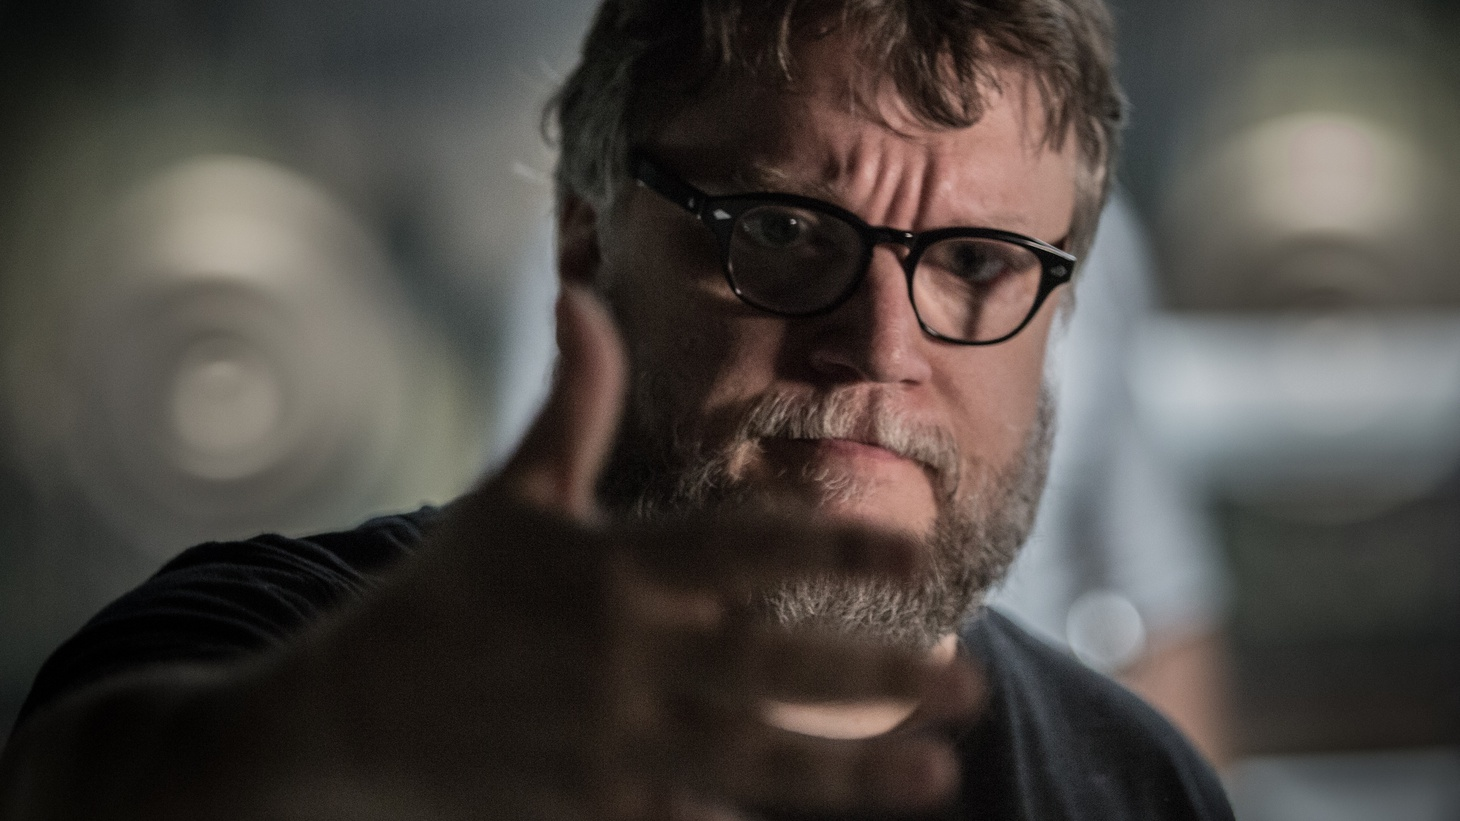 Director Guillermo del Toro talks love without boundaries in The Shape of Water.